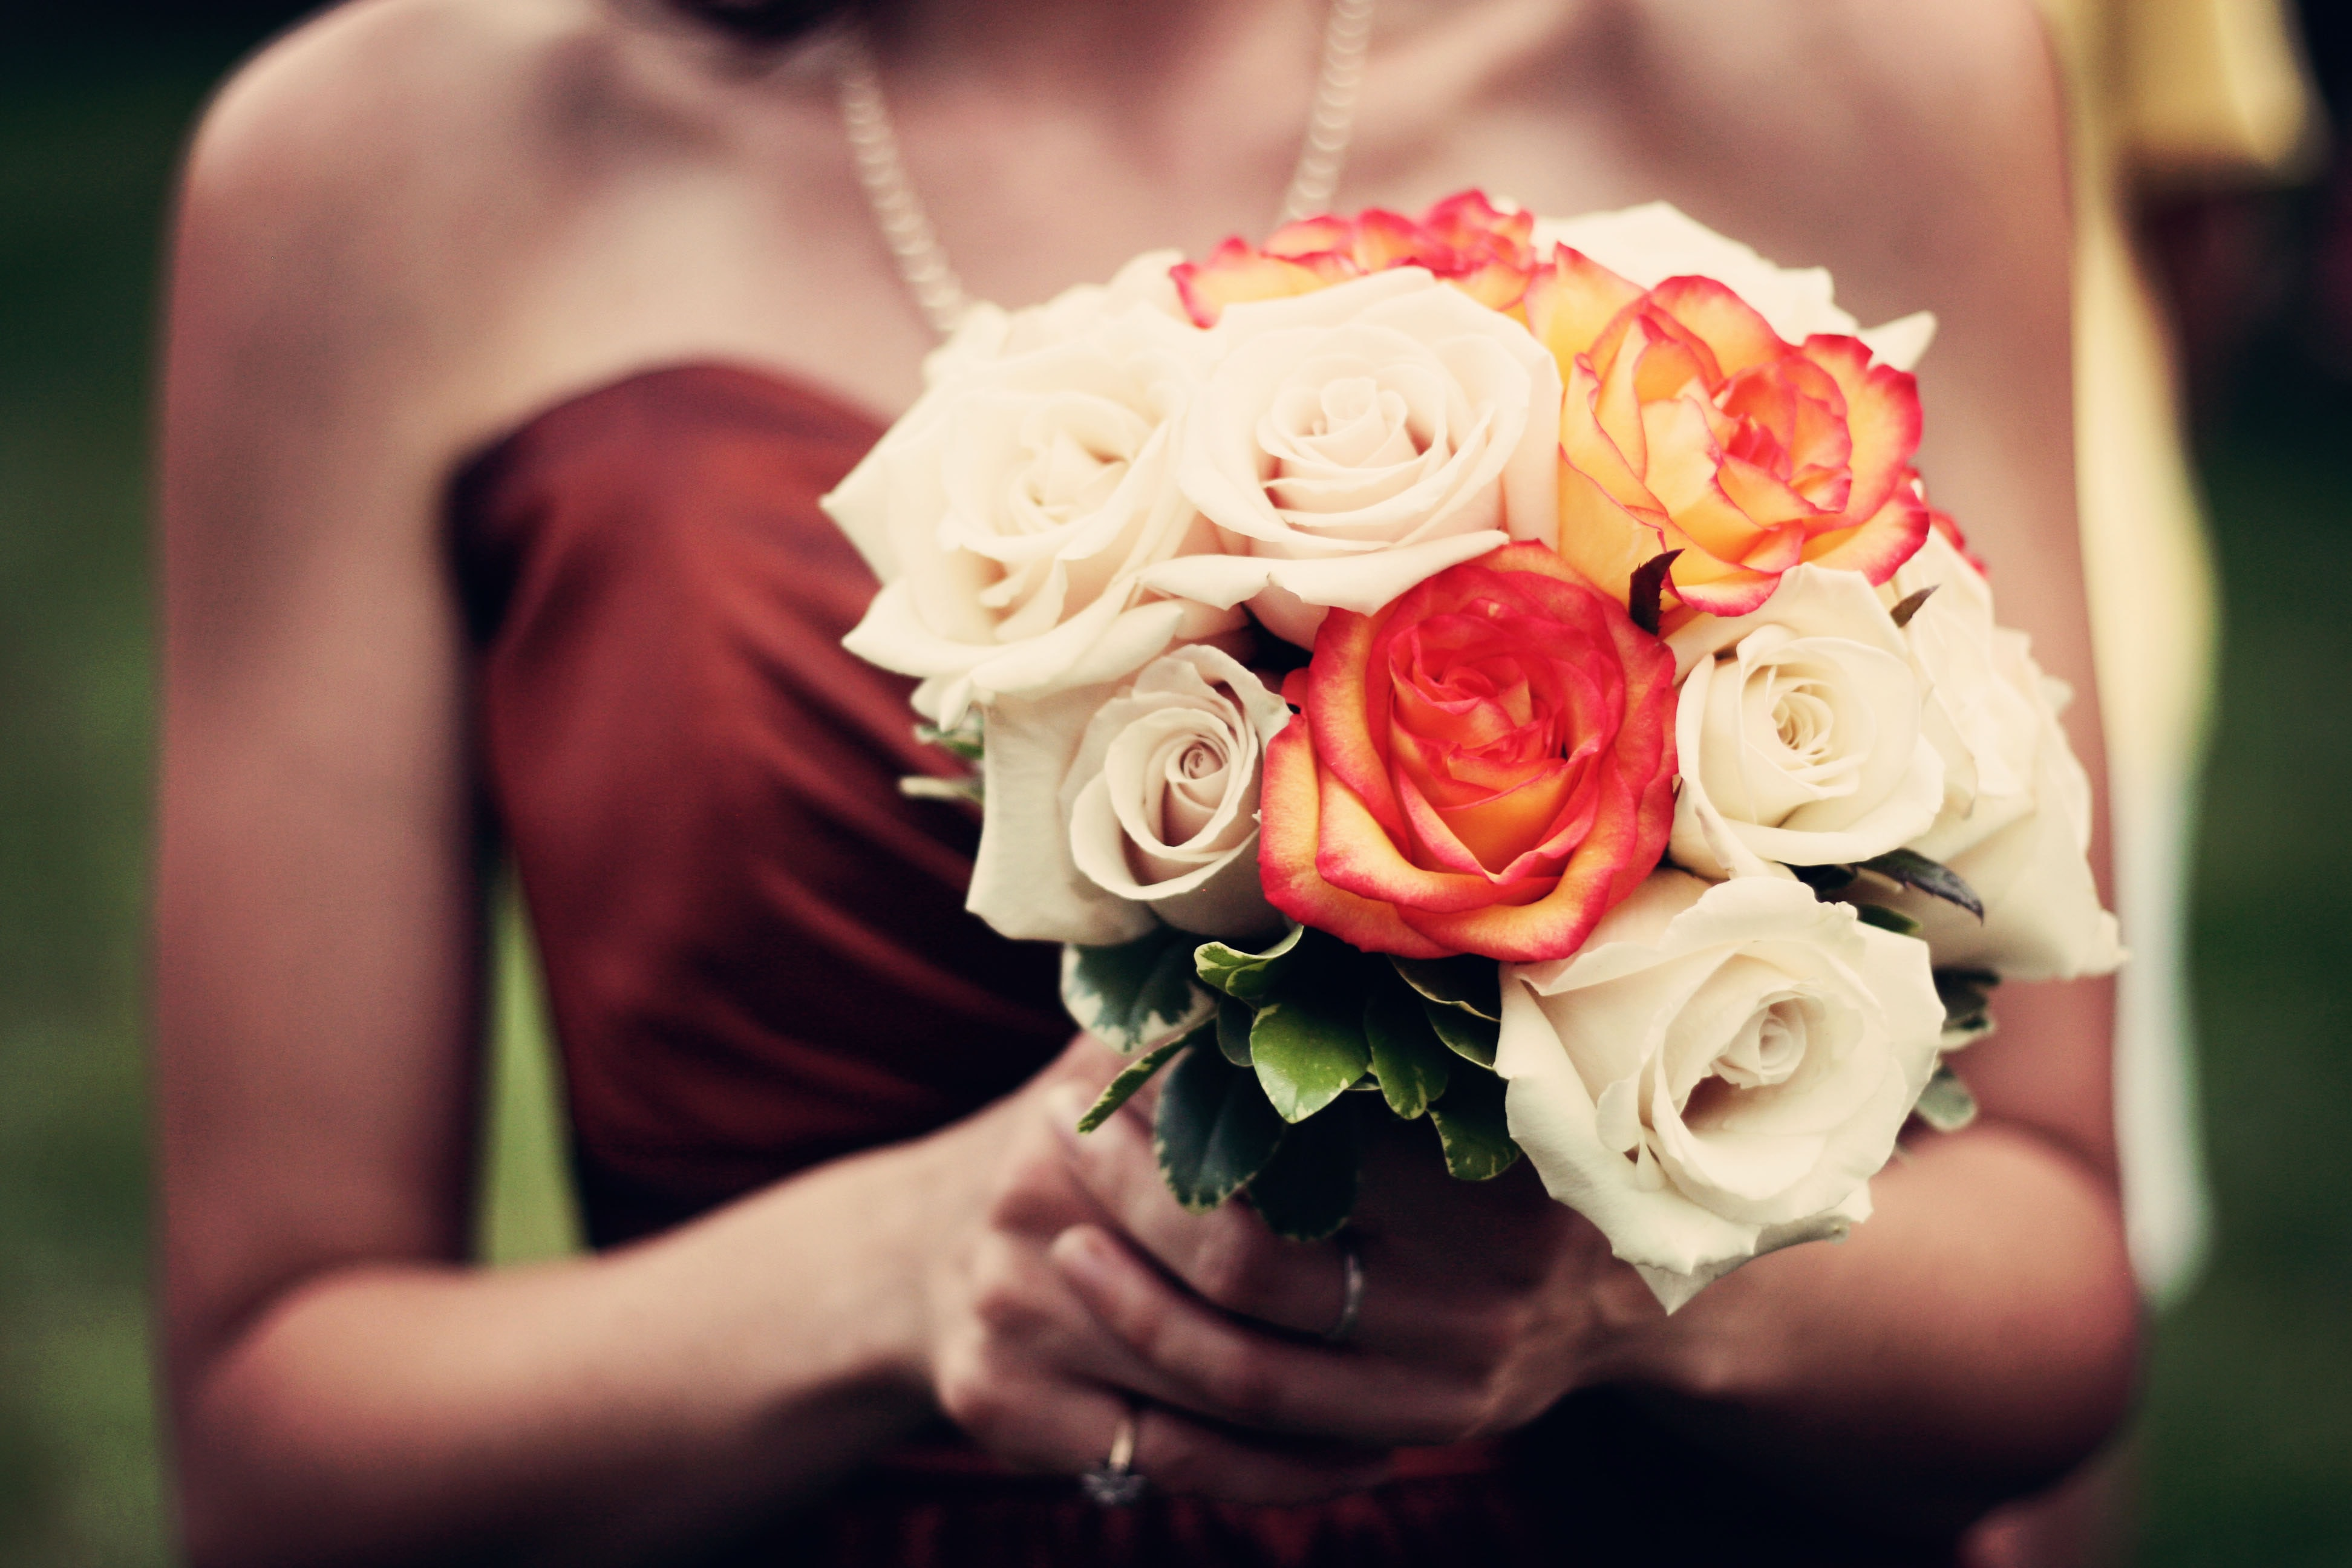 Low shot of bridesmaid holding a bouquet of roses walking down the aisle